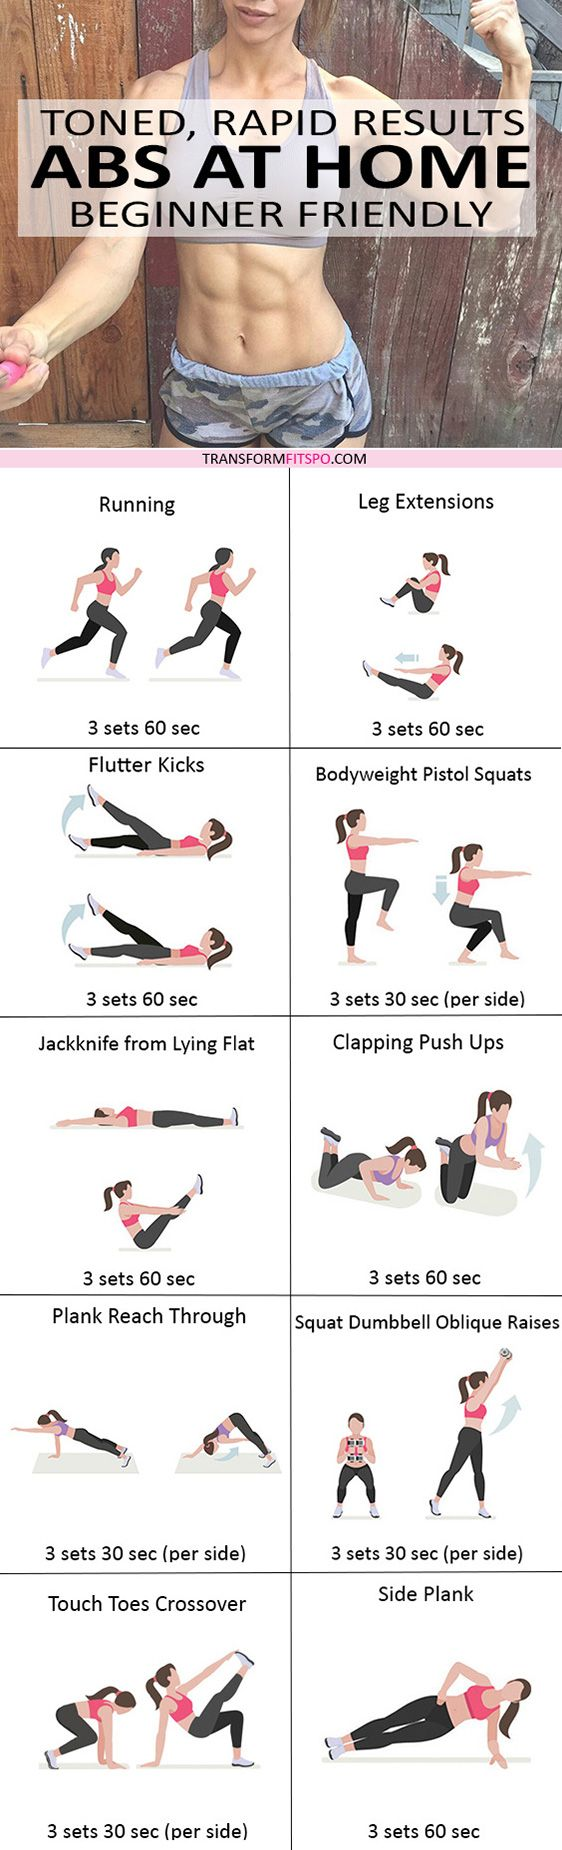 #womensworkout #workout #female fitness Repin and share if this workout gave you abs at home! Click the pin for the full workout.